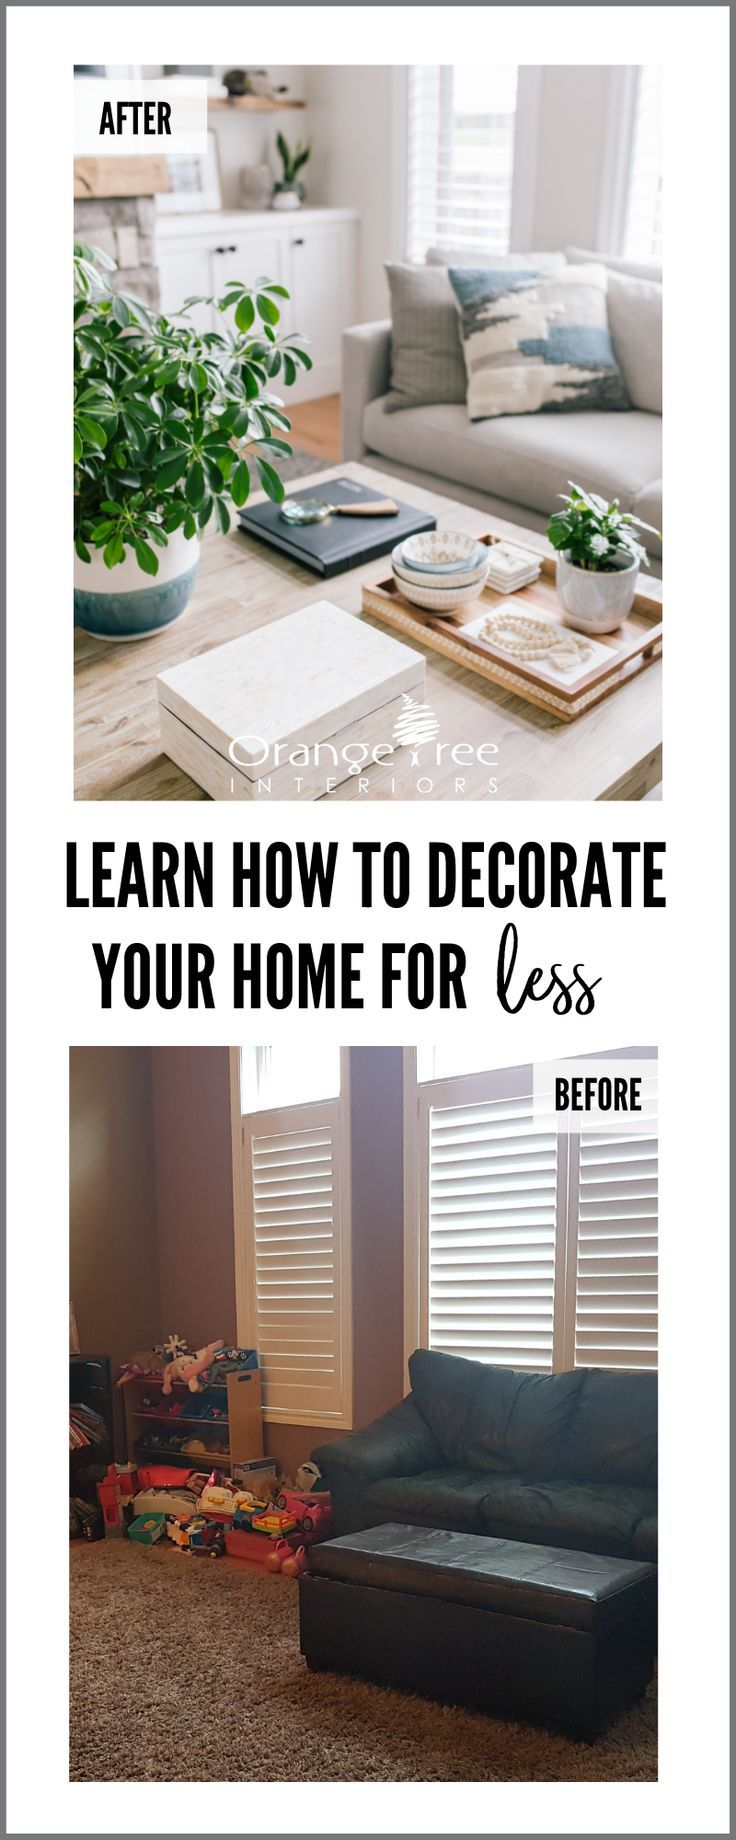 Read This If You Want To Learn How To Save Money While Decorating